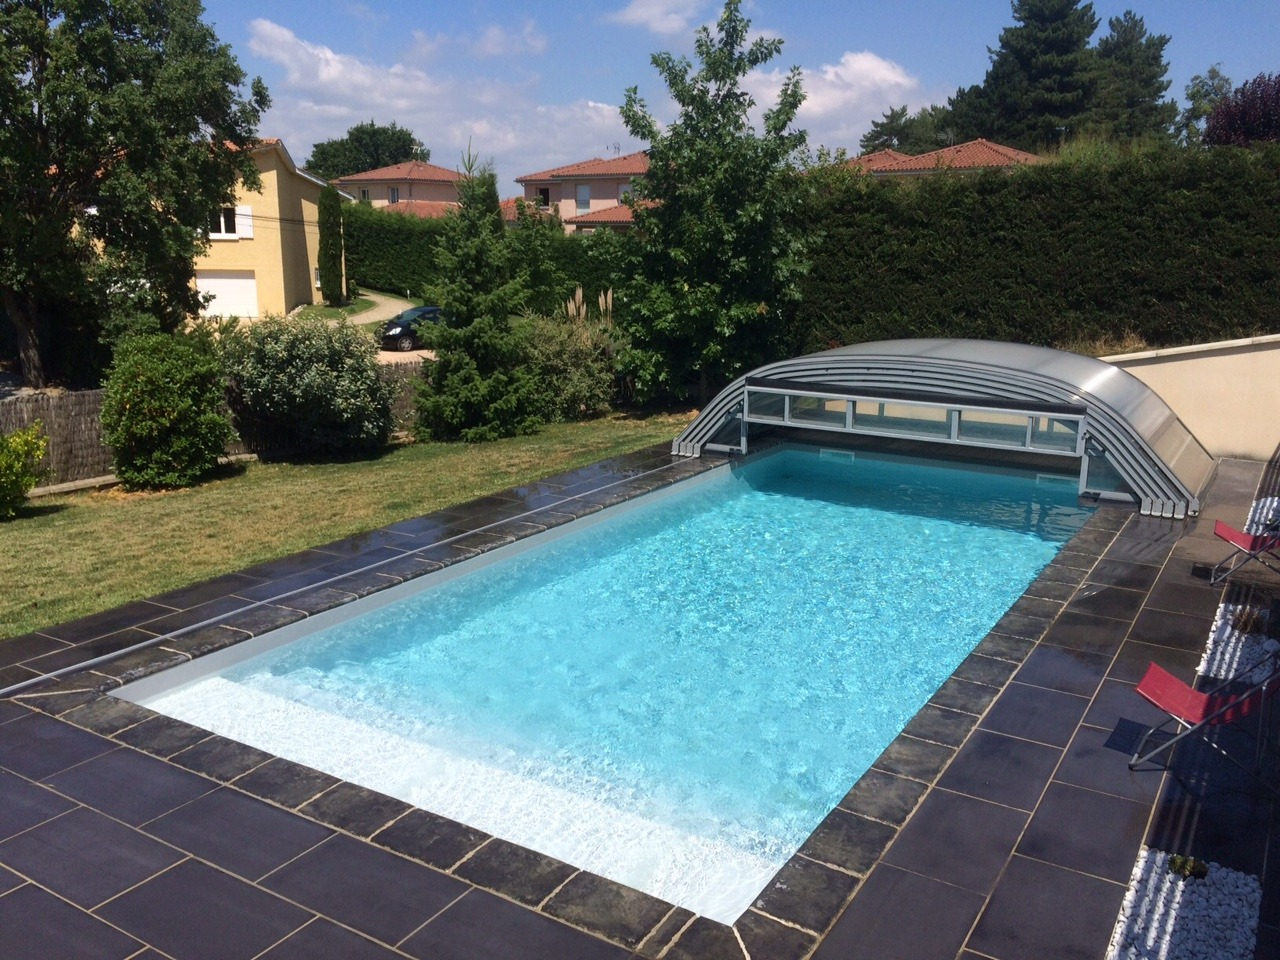 Elitys mianso abri de piscine bas t lescopique ec 39 creation for Prix dome piscine